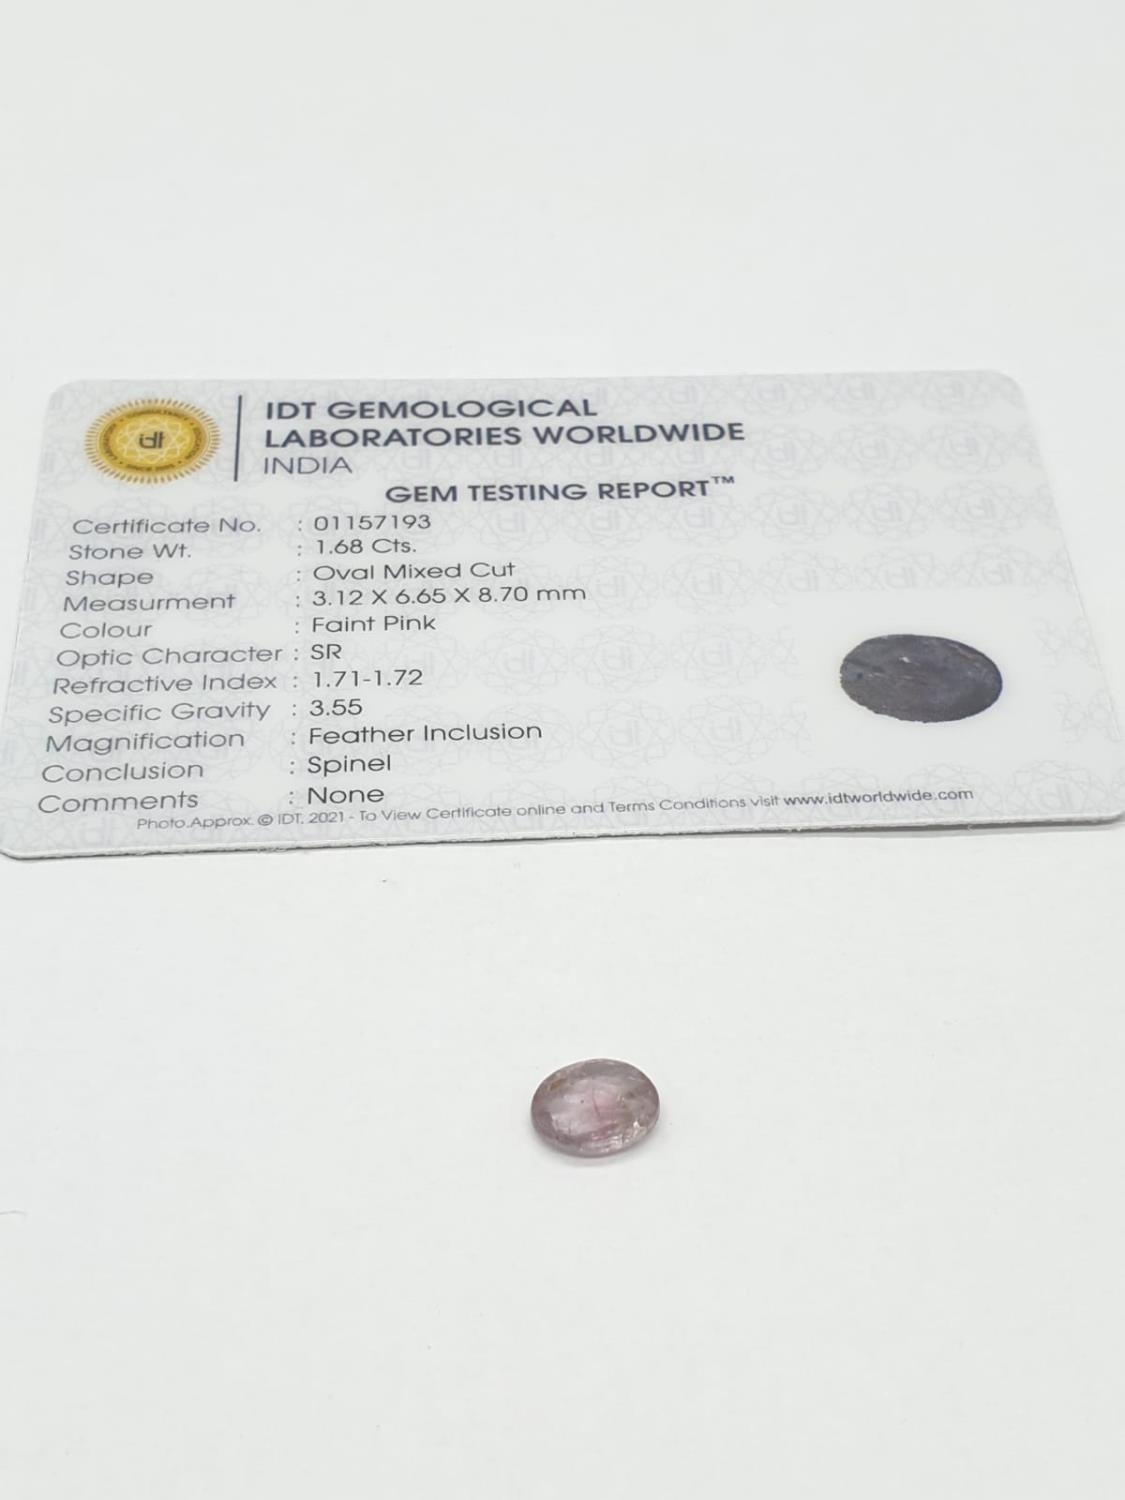 1.68ct IDT Certified spinel gemstone. Oval mixed cut. - Image 4 of 4